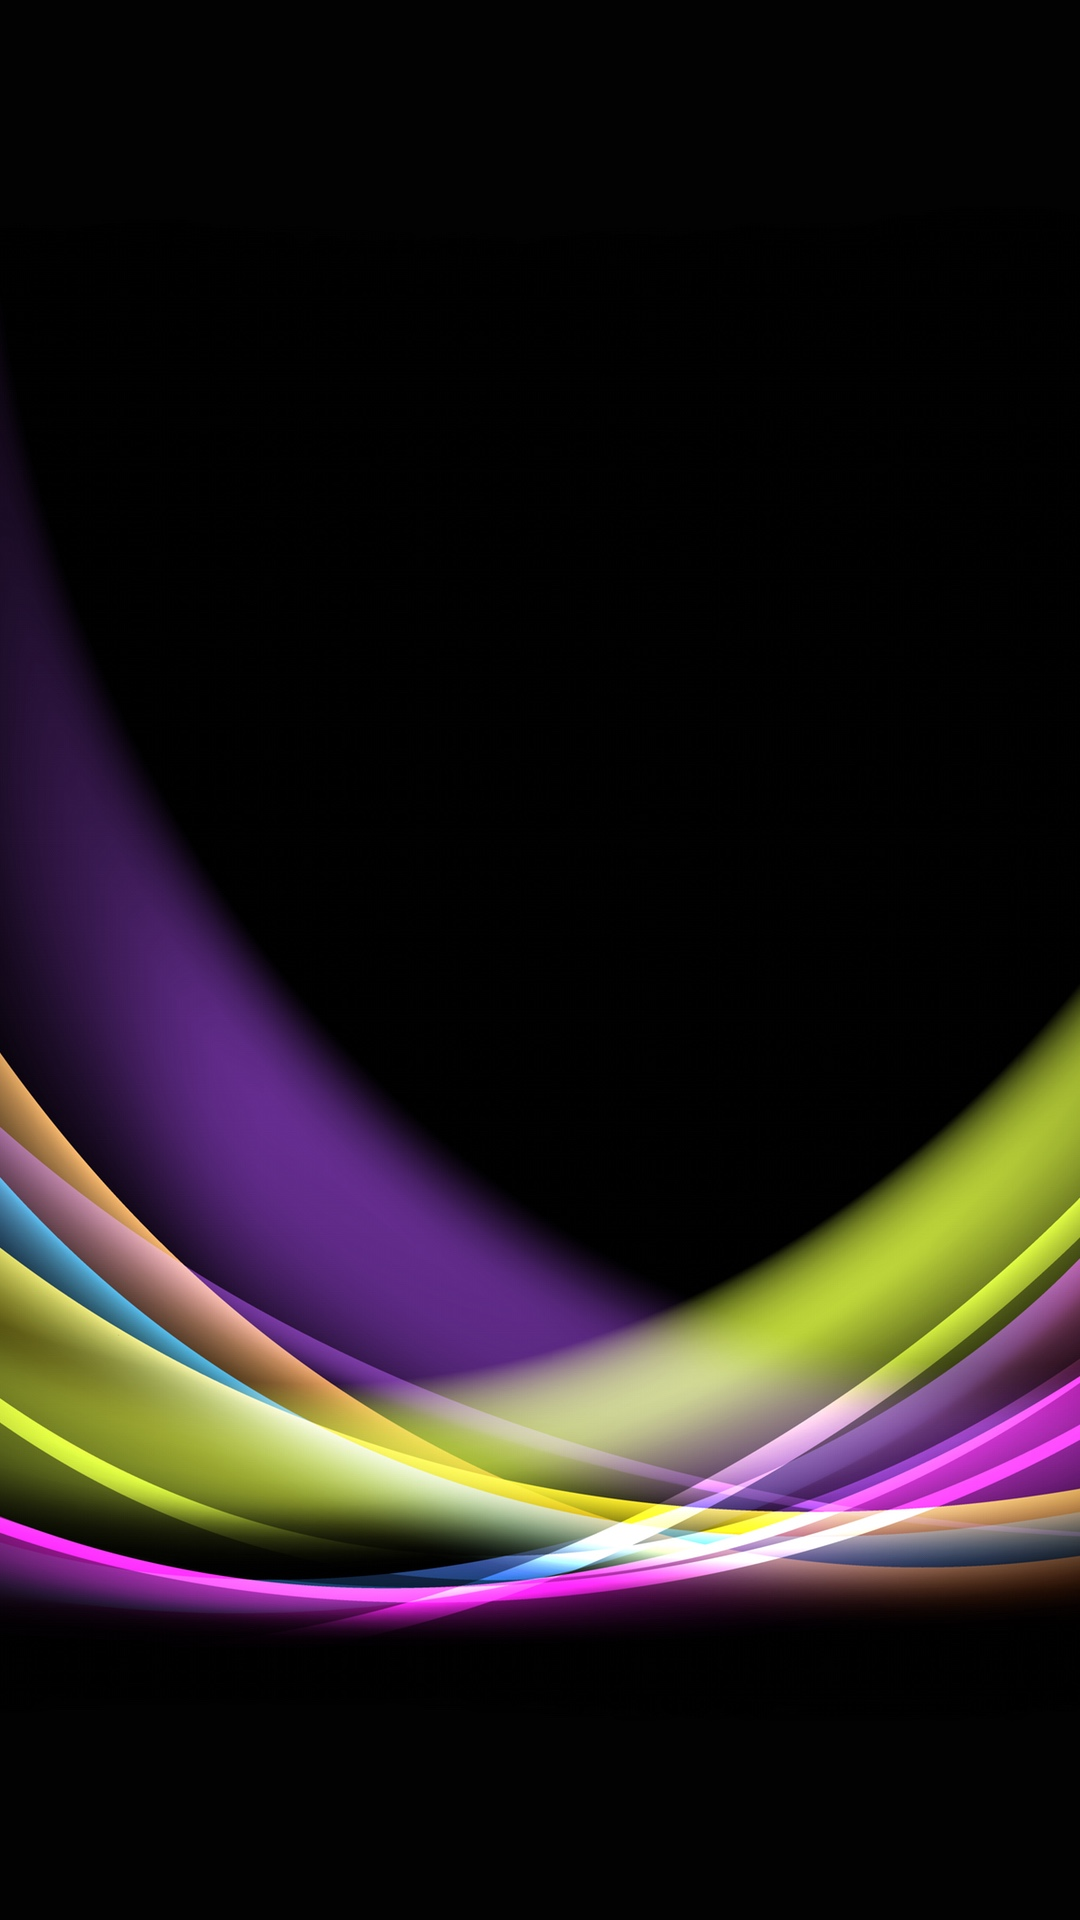 Souvent Wallpapers Samsung Galaxy A7 - Pack 003 - WallsPhone RR95